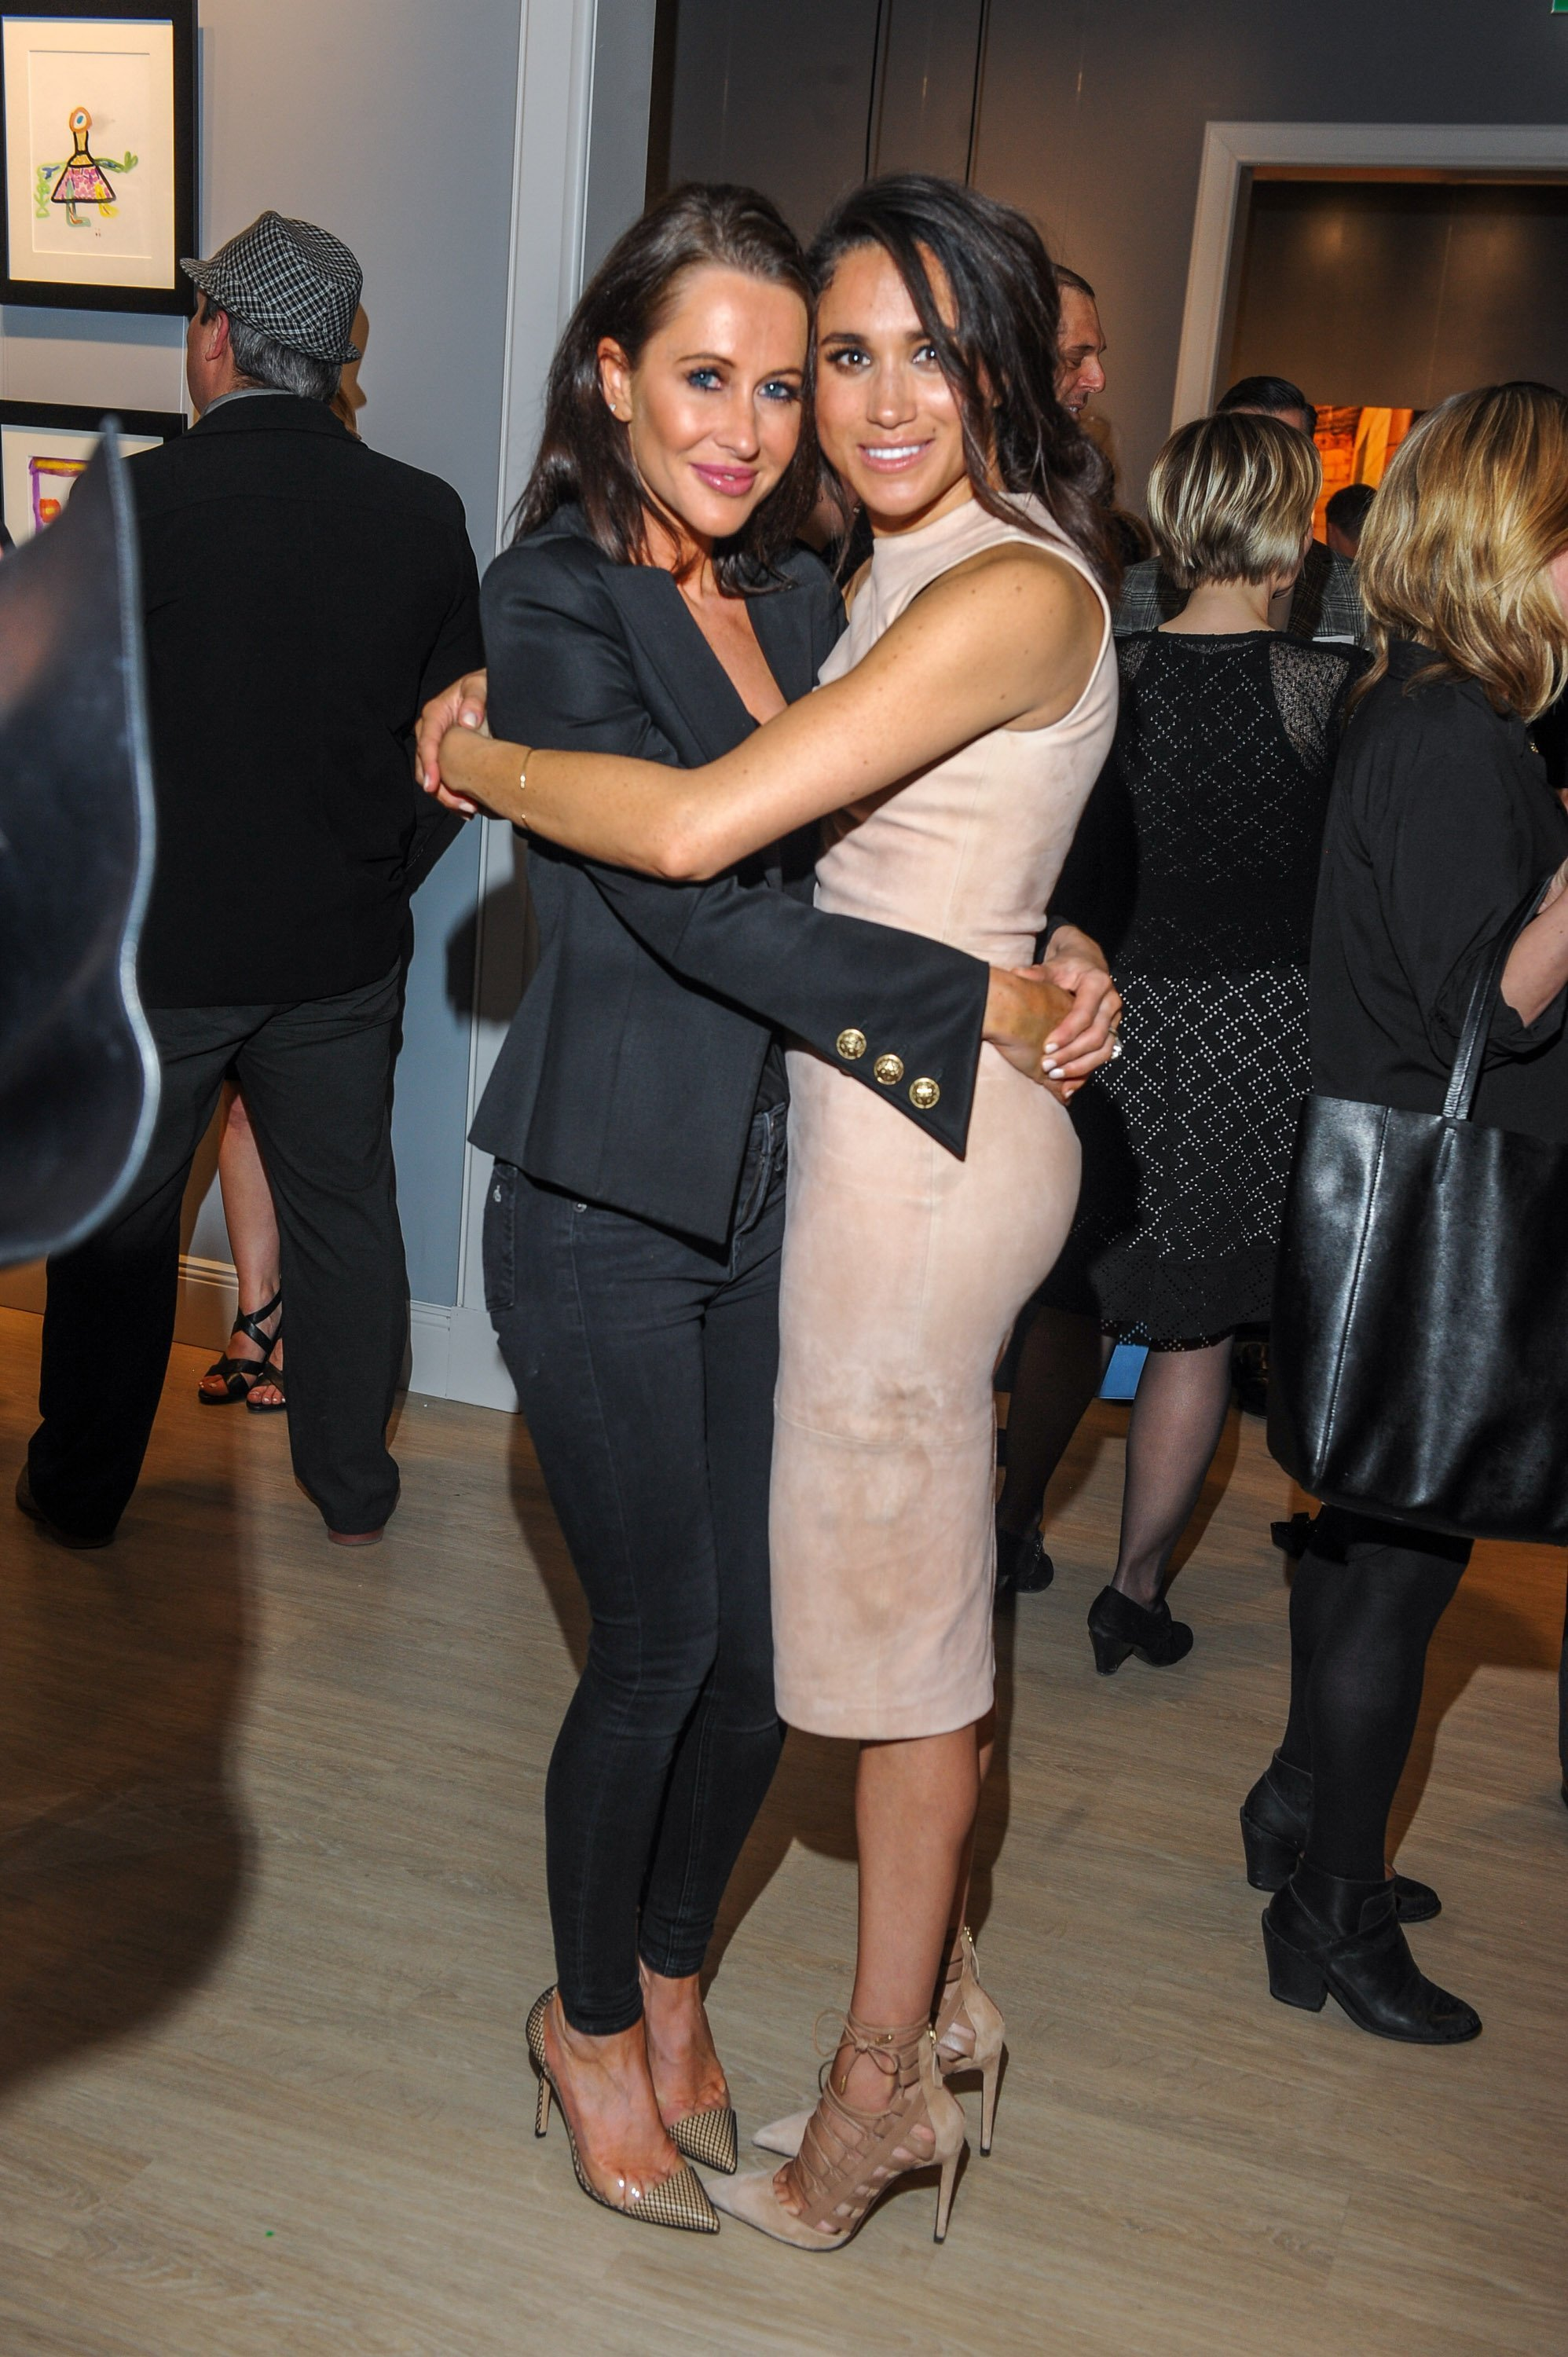 Jessica Mulroney and Meghan Markle attend the World Vision event held at Lumas Gallery on March 22, 2016, in Toronto, Canada. | Source: Getty Images.